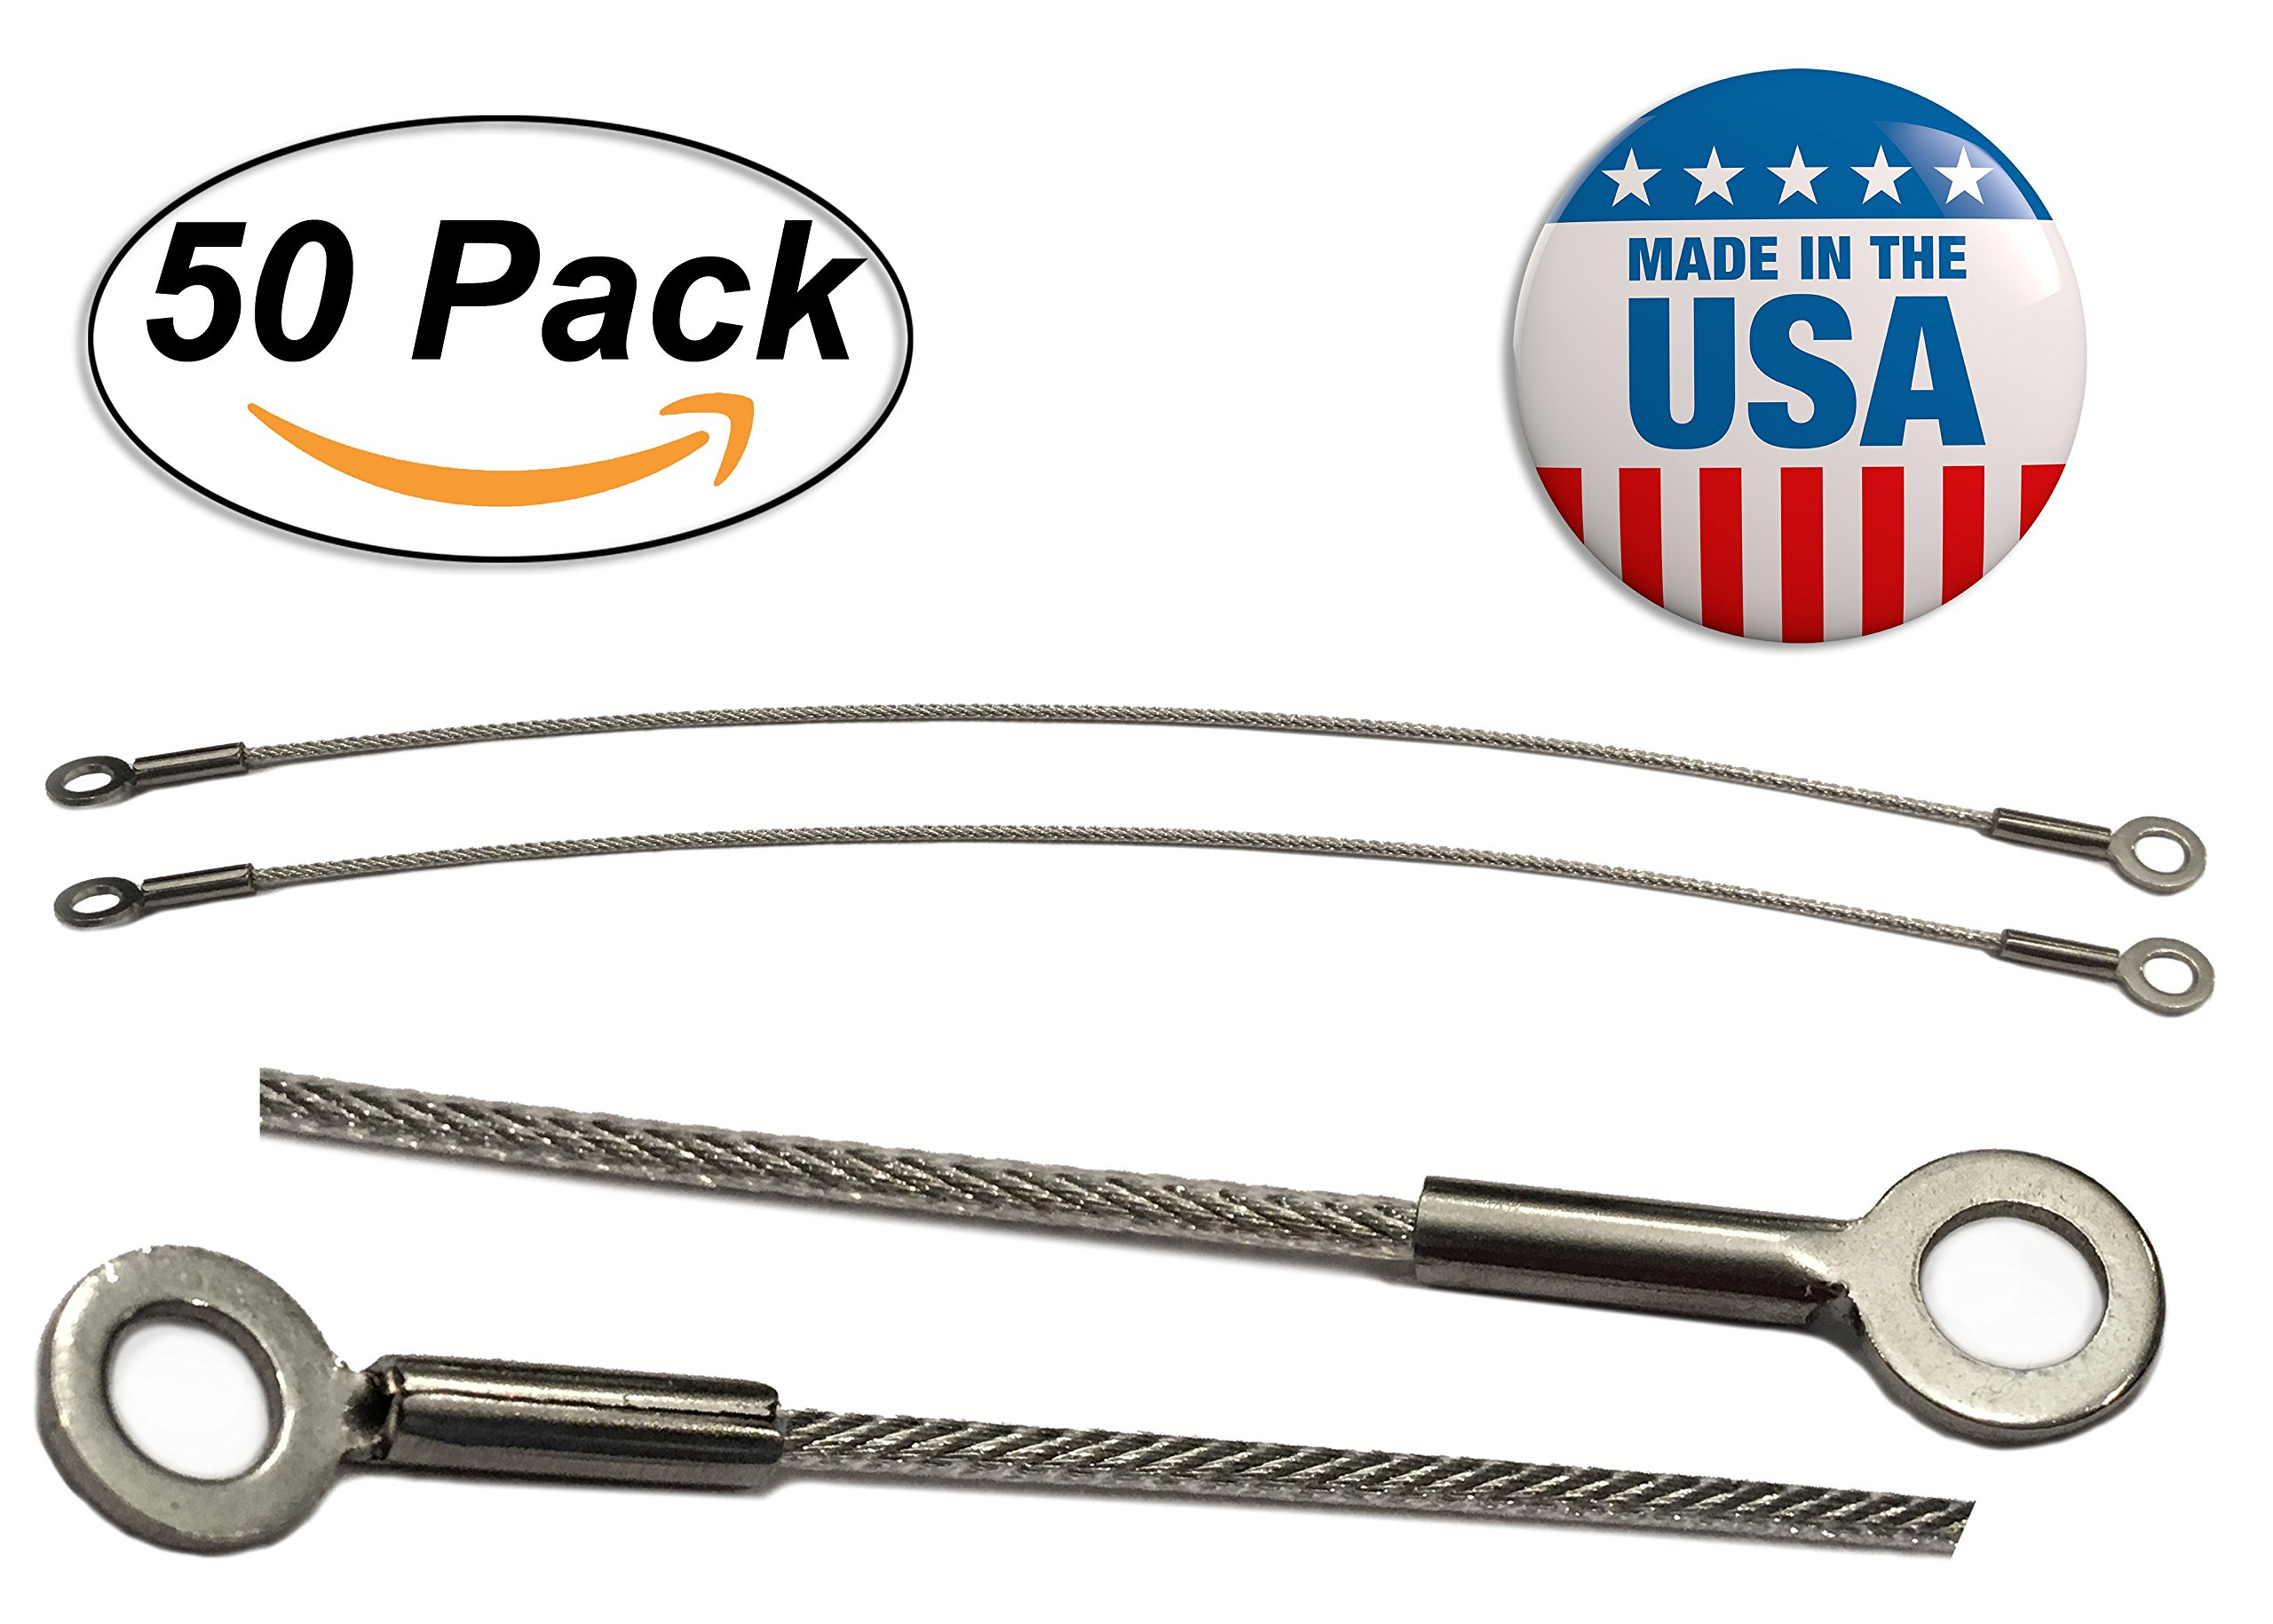 Stainless Steel Cabinet Door Restraint Kit (Packs of 2, 5, 10 or 50) 8 inch Cupboard Hinge Limiter, Restrict Door Swing, Flexible Braided Cable, Limit Door Opening Angle, Made in USA (50 Pack)